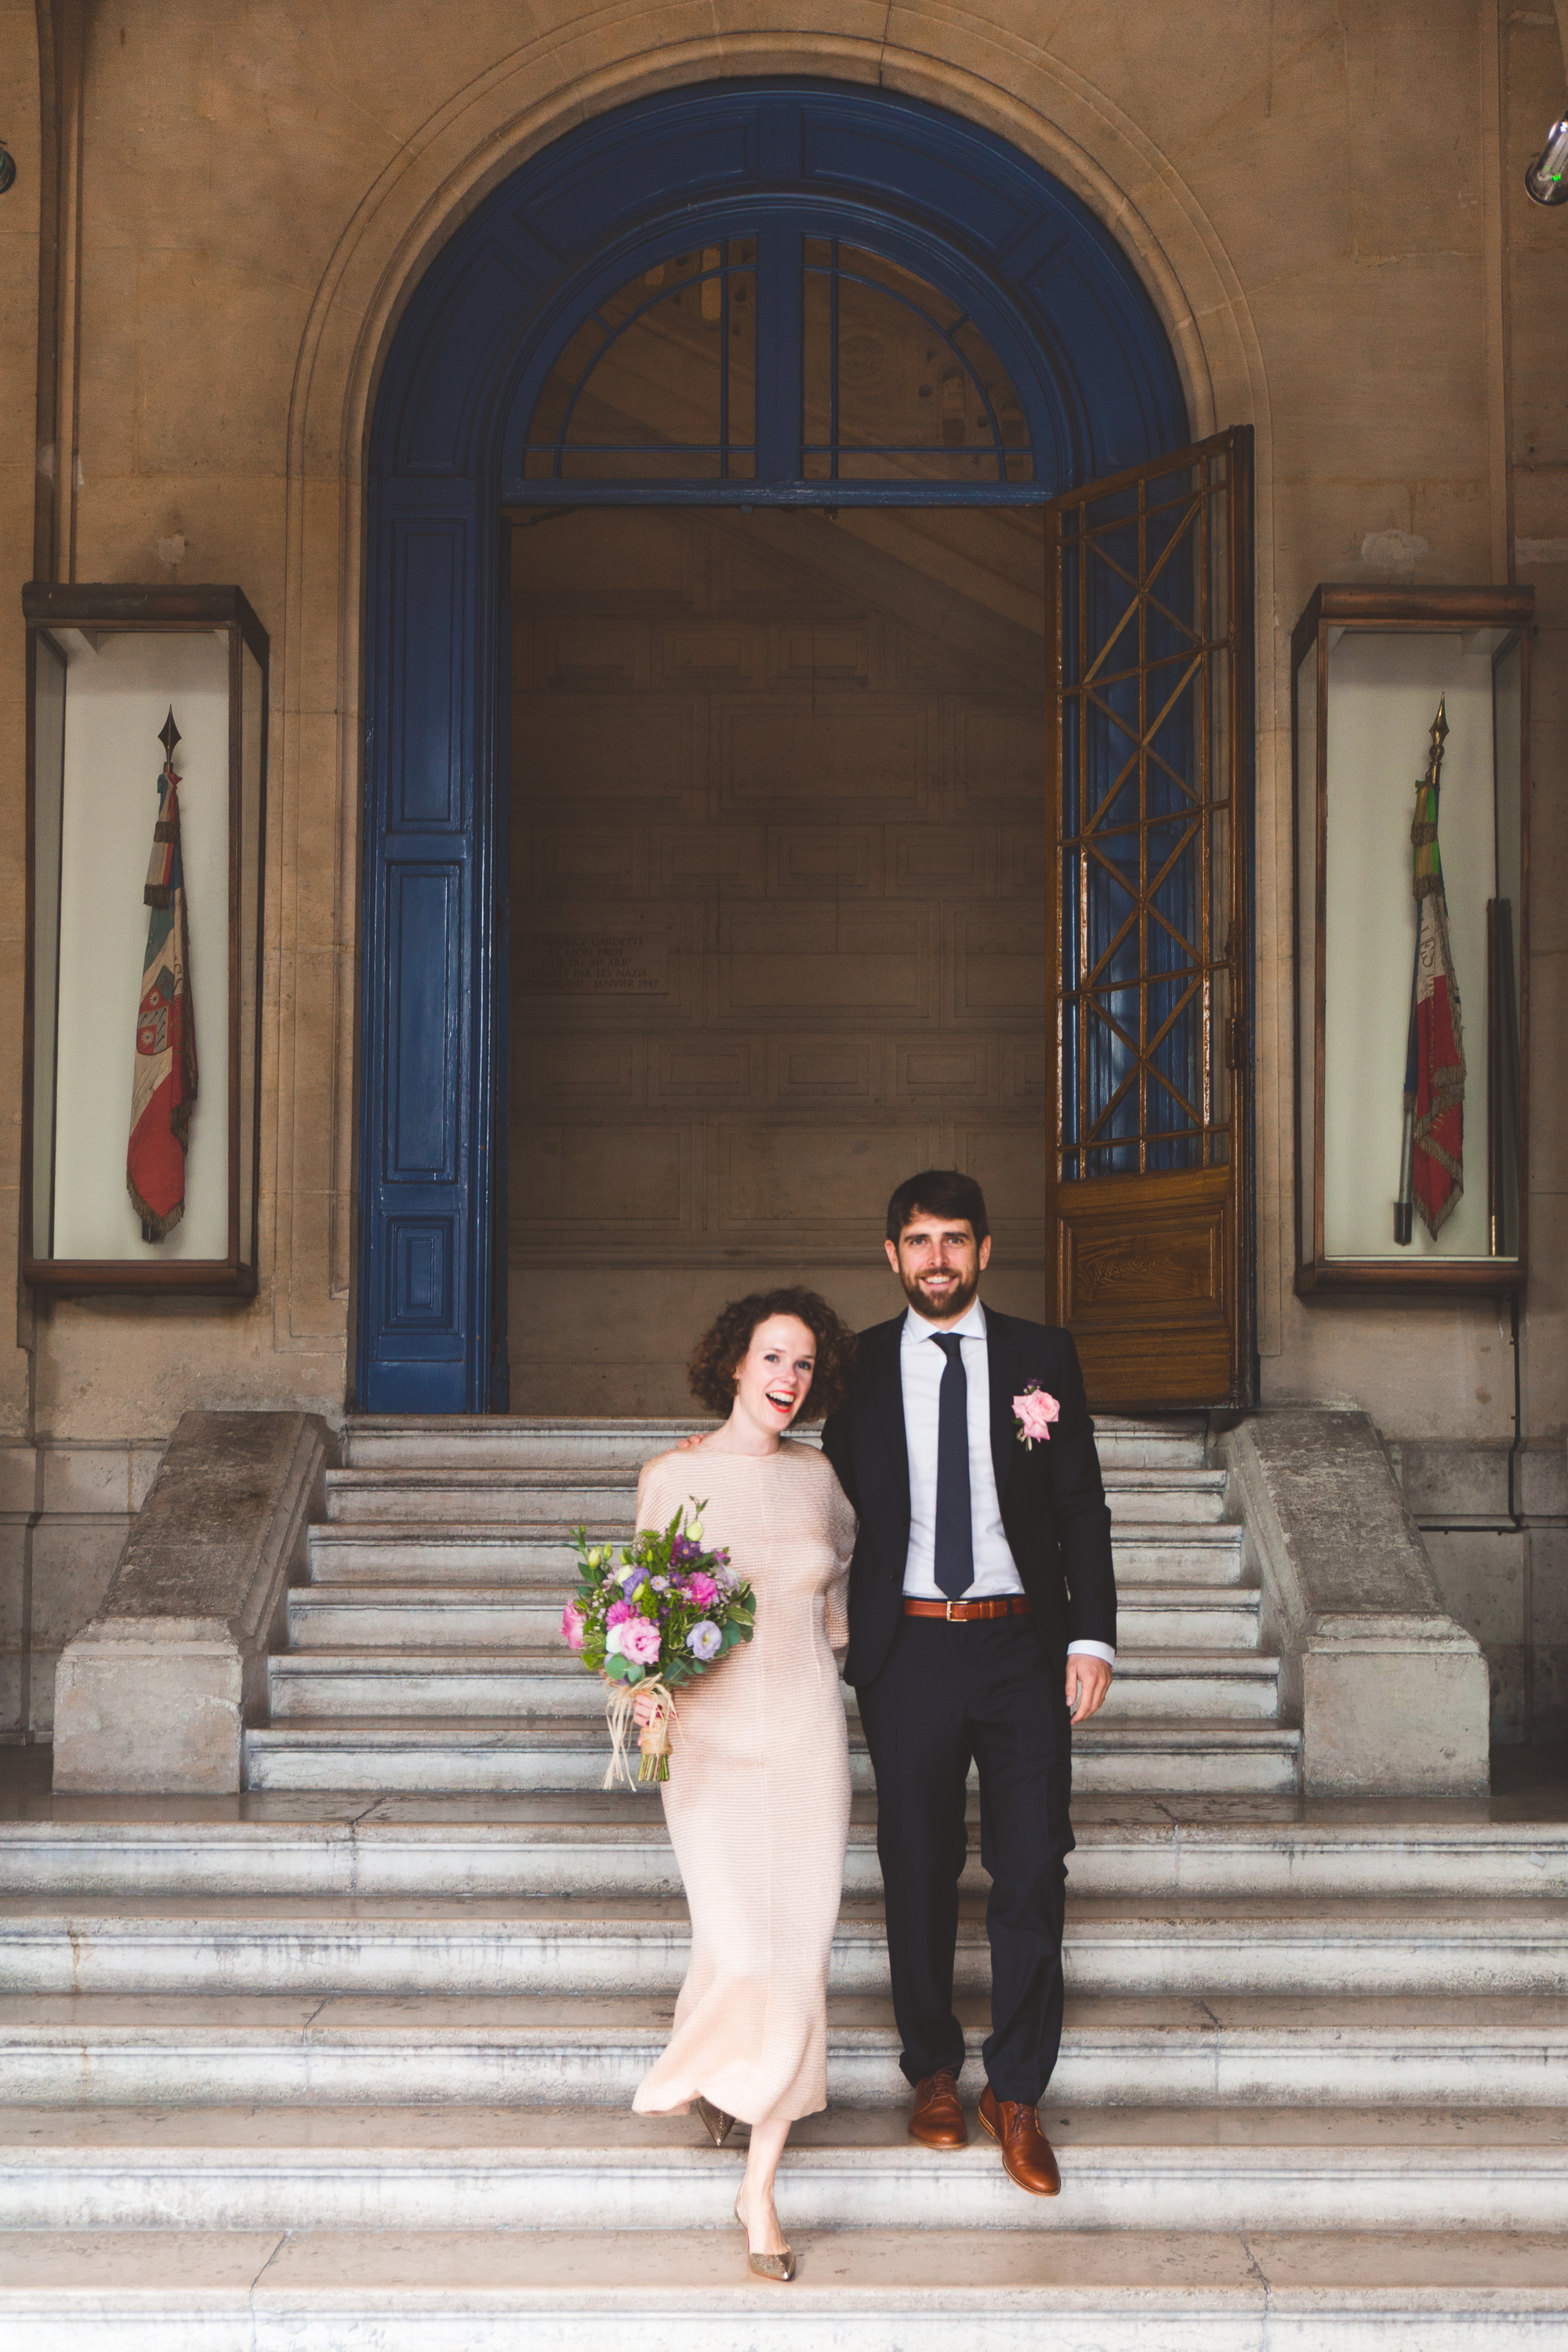 Emma&Nico_WeddingParis_by_UlaBlocksage-97.jpg